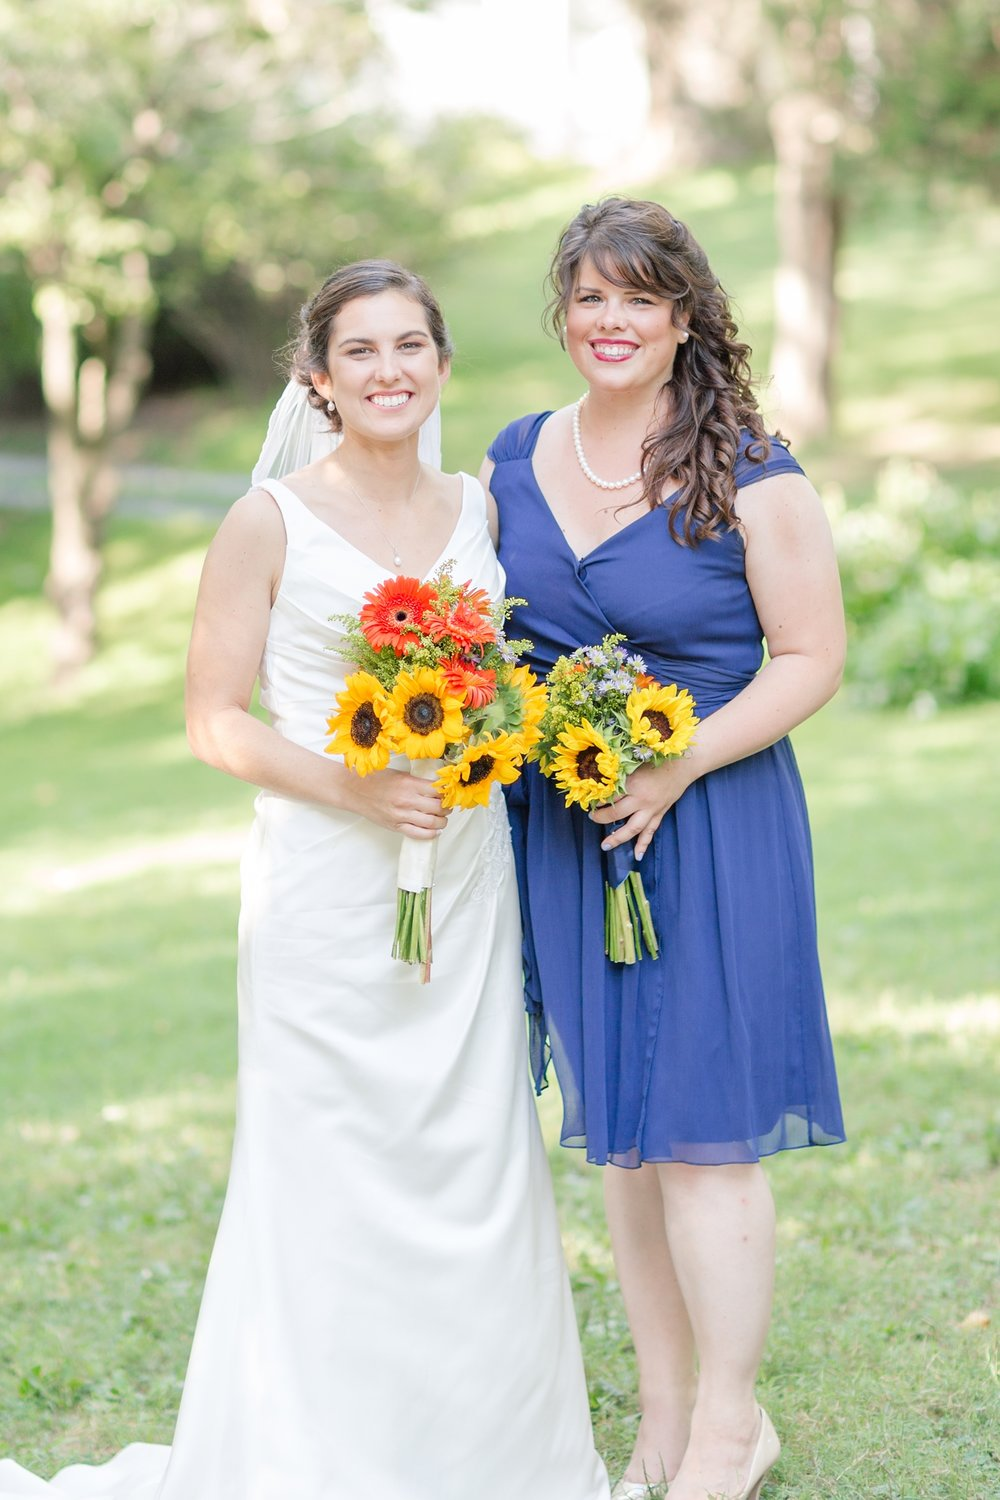 My old roomie Allison was a bridesmaid!! Love you girl!